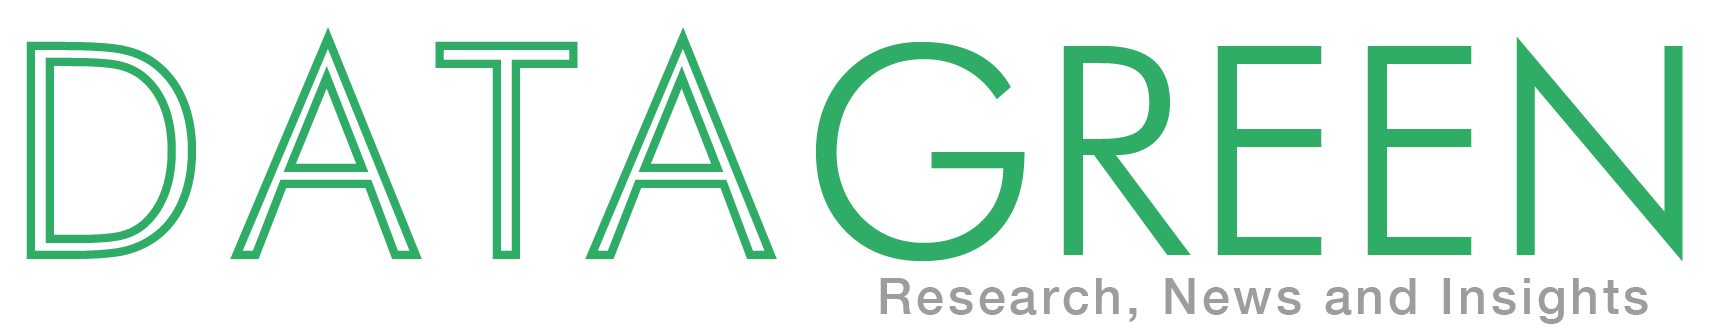 DATAGREEN | Research, News and Insight from environment